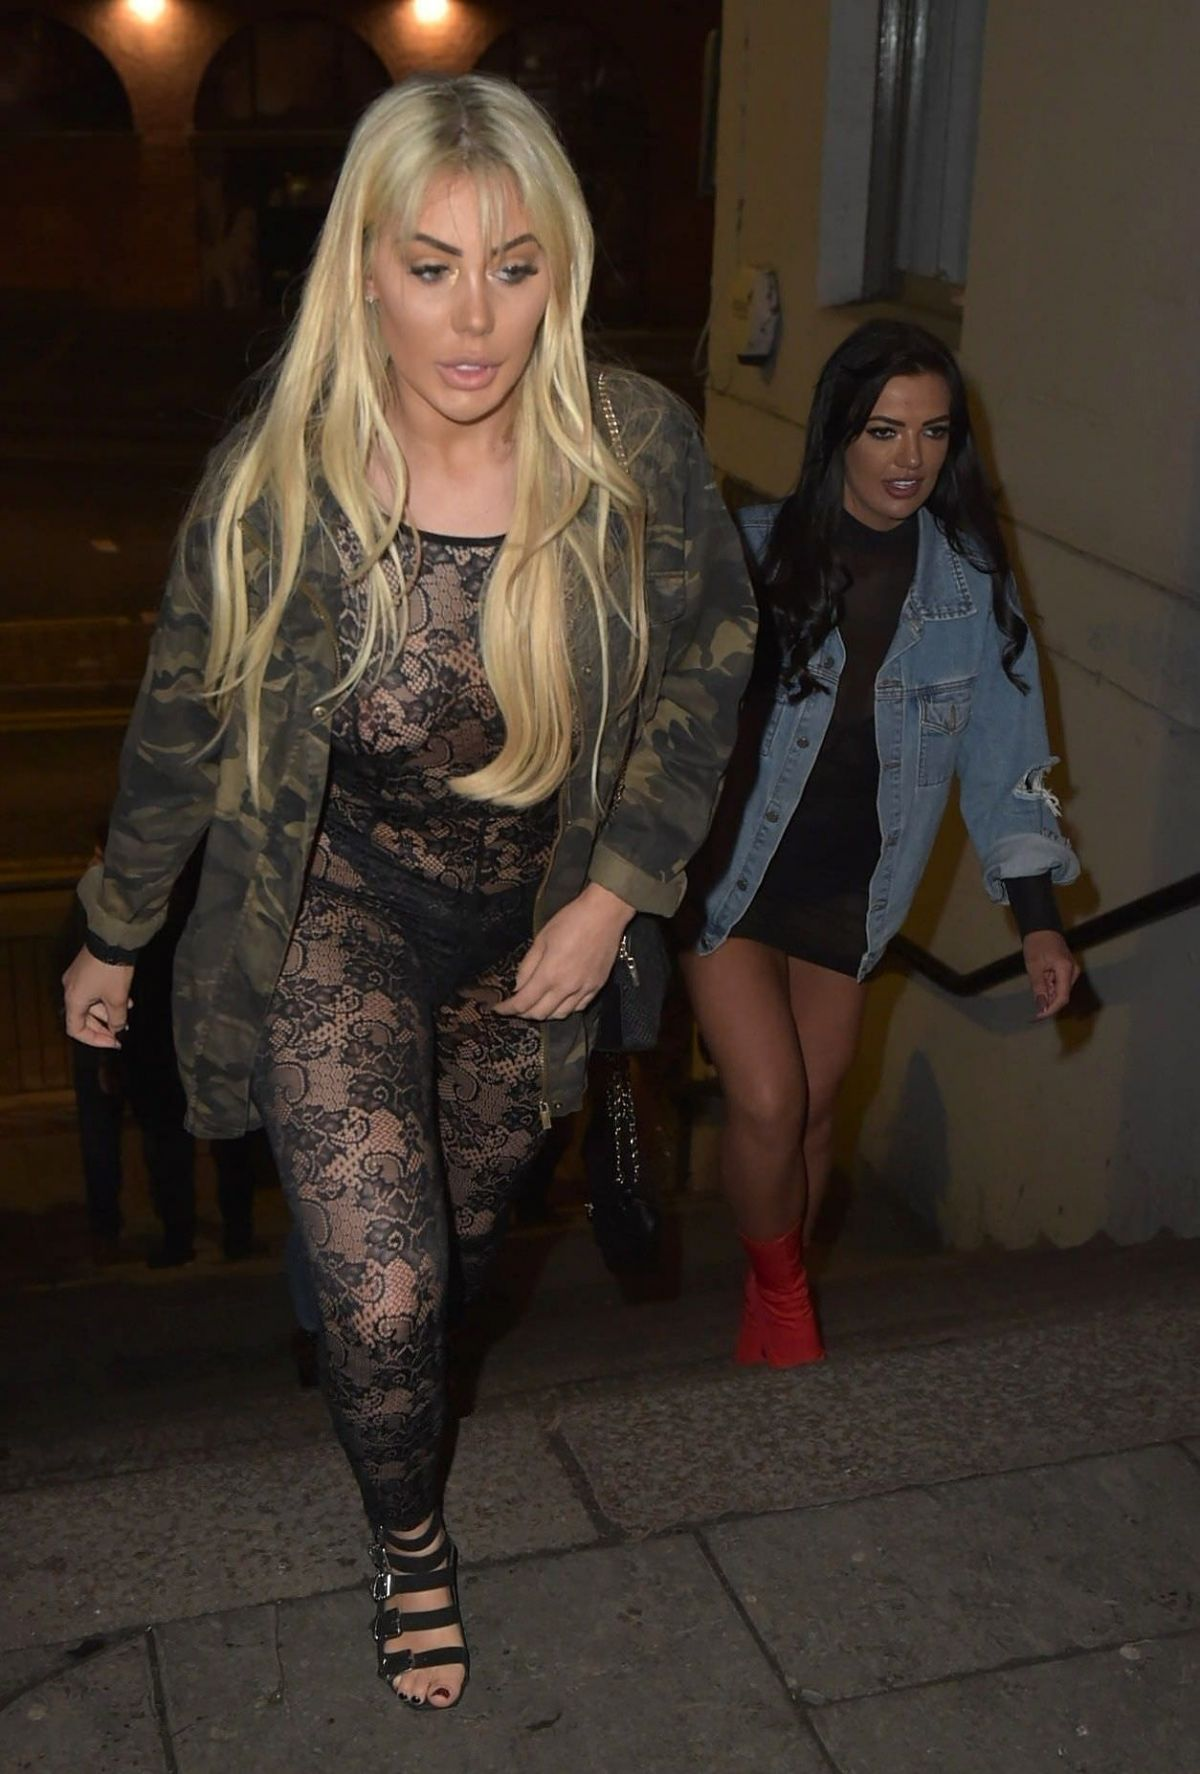 Chloe ferry see through 7 Photos nudes (77 images)